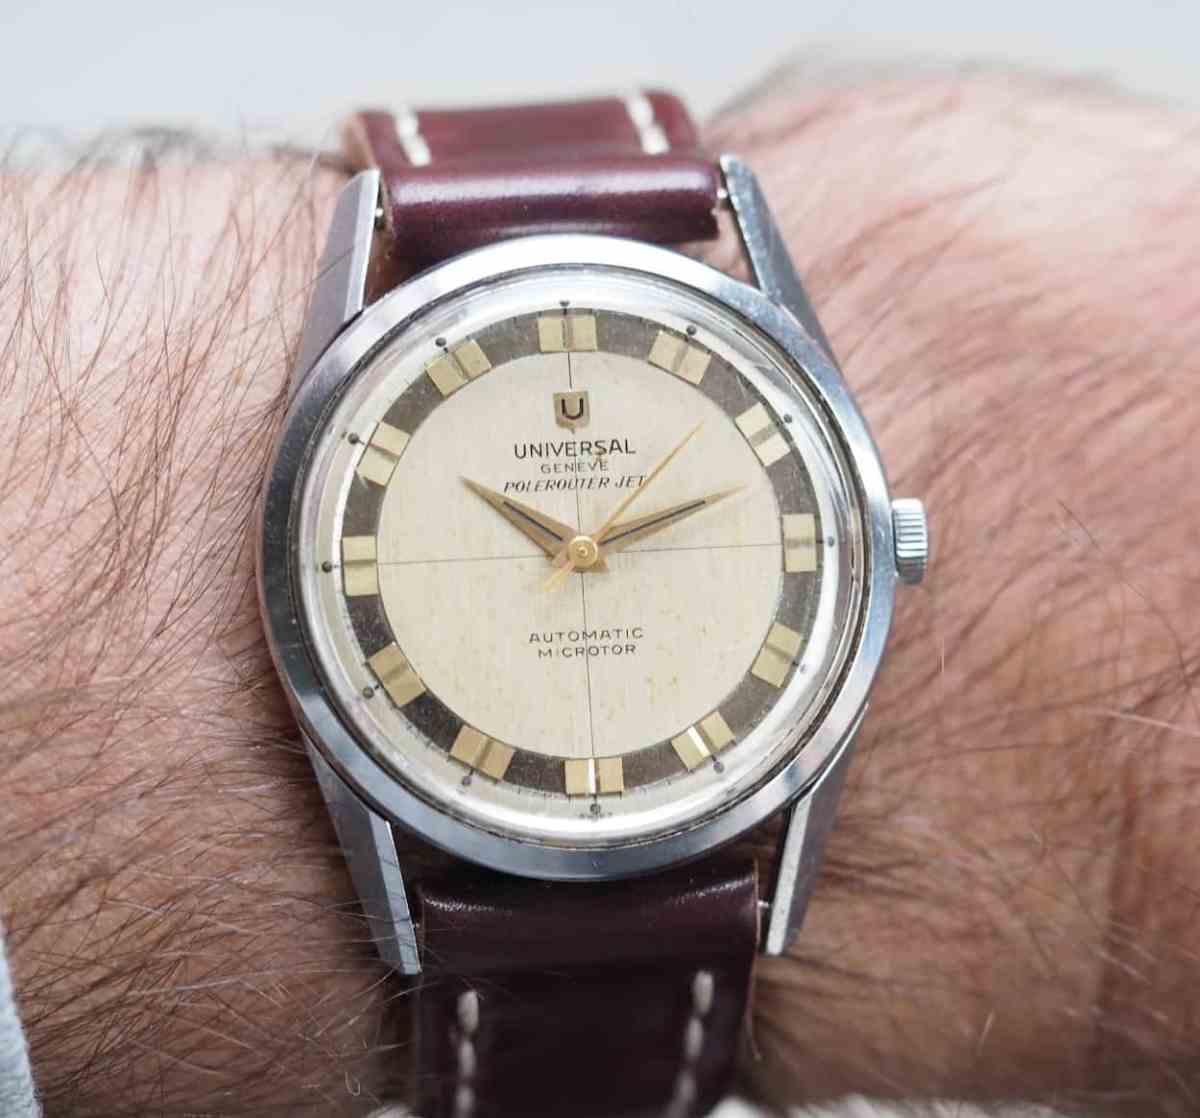 The Polerouter Jet wears well on the wrist